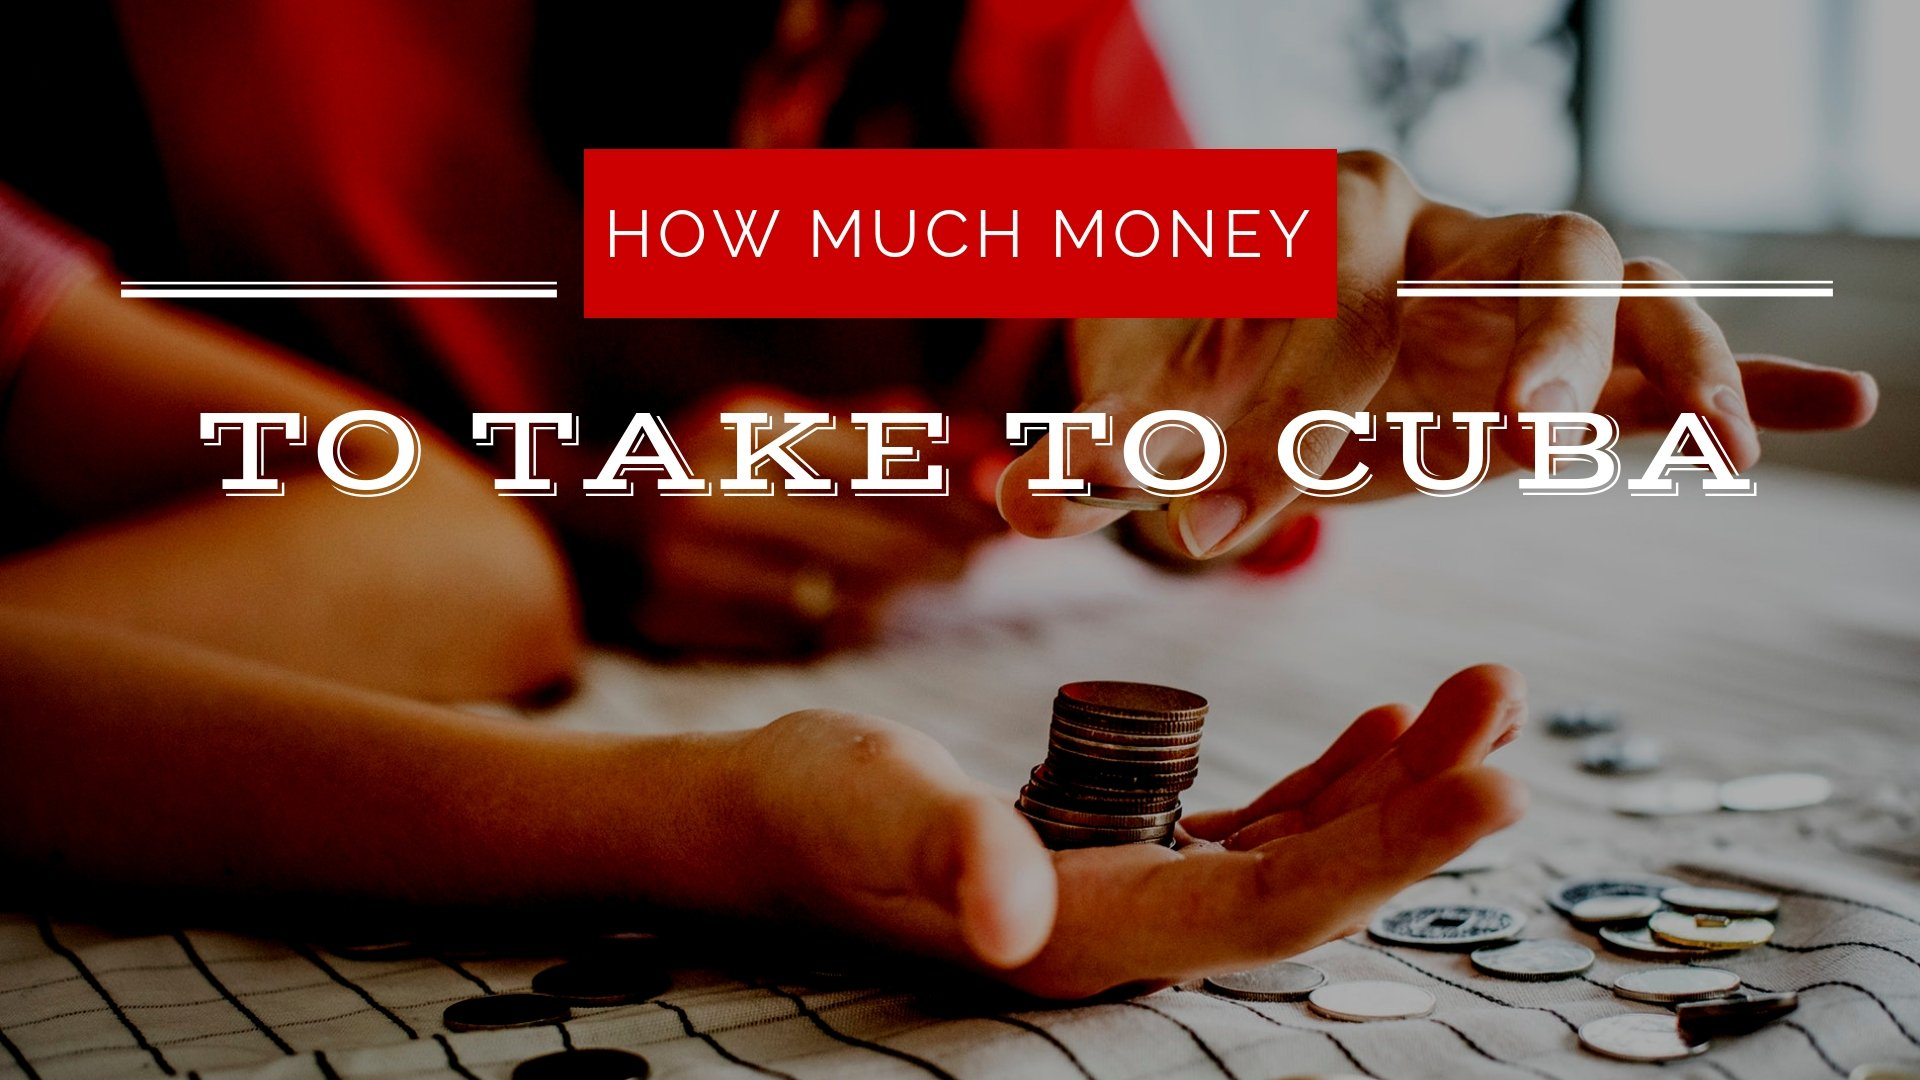 How Much Money to Take to Cuba